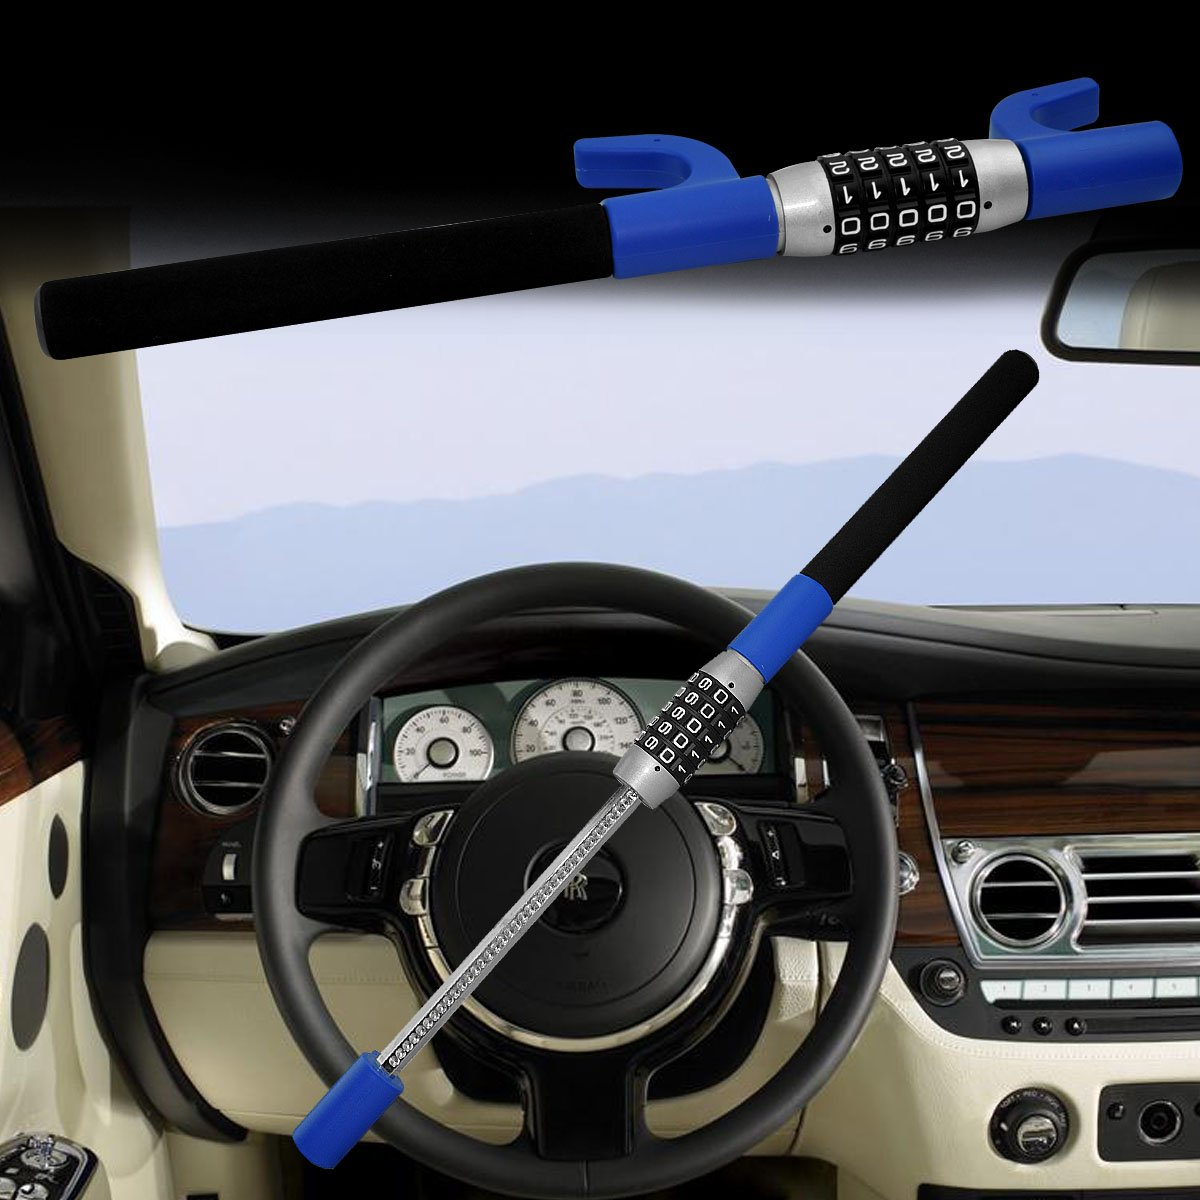 LC Prime Steering Wheel Lock Universal Vehicle Car Truck Van SUV Keyless Password Coded Twin Hooks Extendable Retractable Heavy Duty Security Guard Anti Theft Steel Plastic Blue